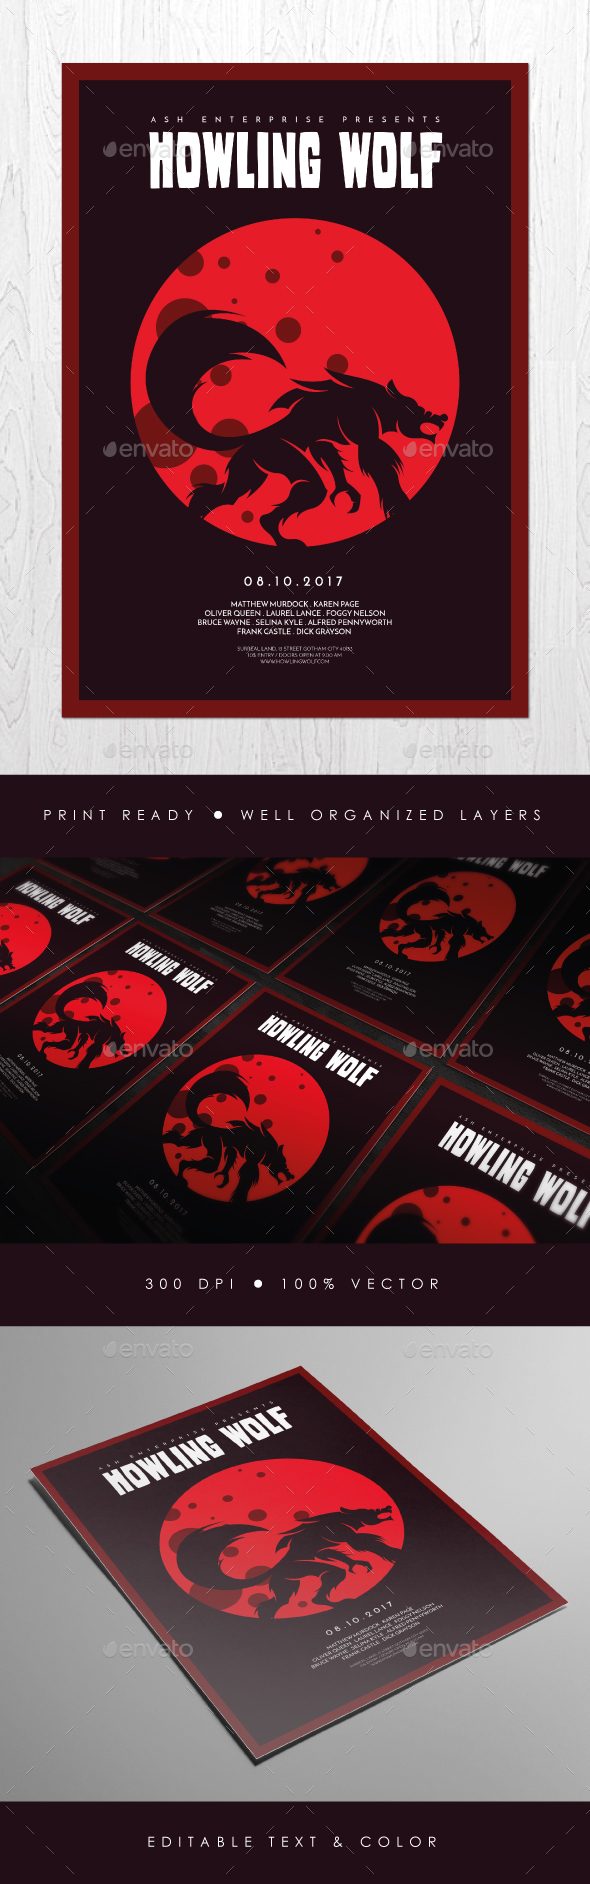 Classic Horror Movie Style Flyer - Events Flyers